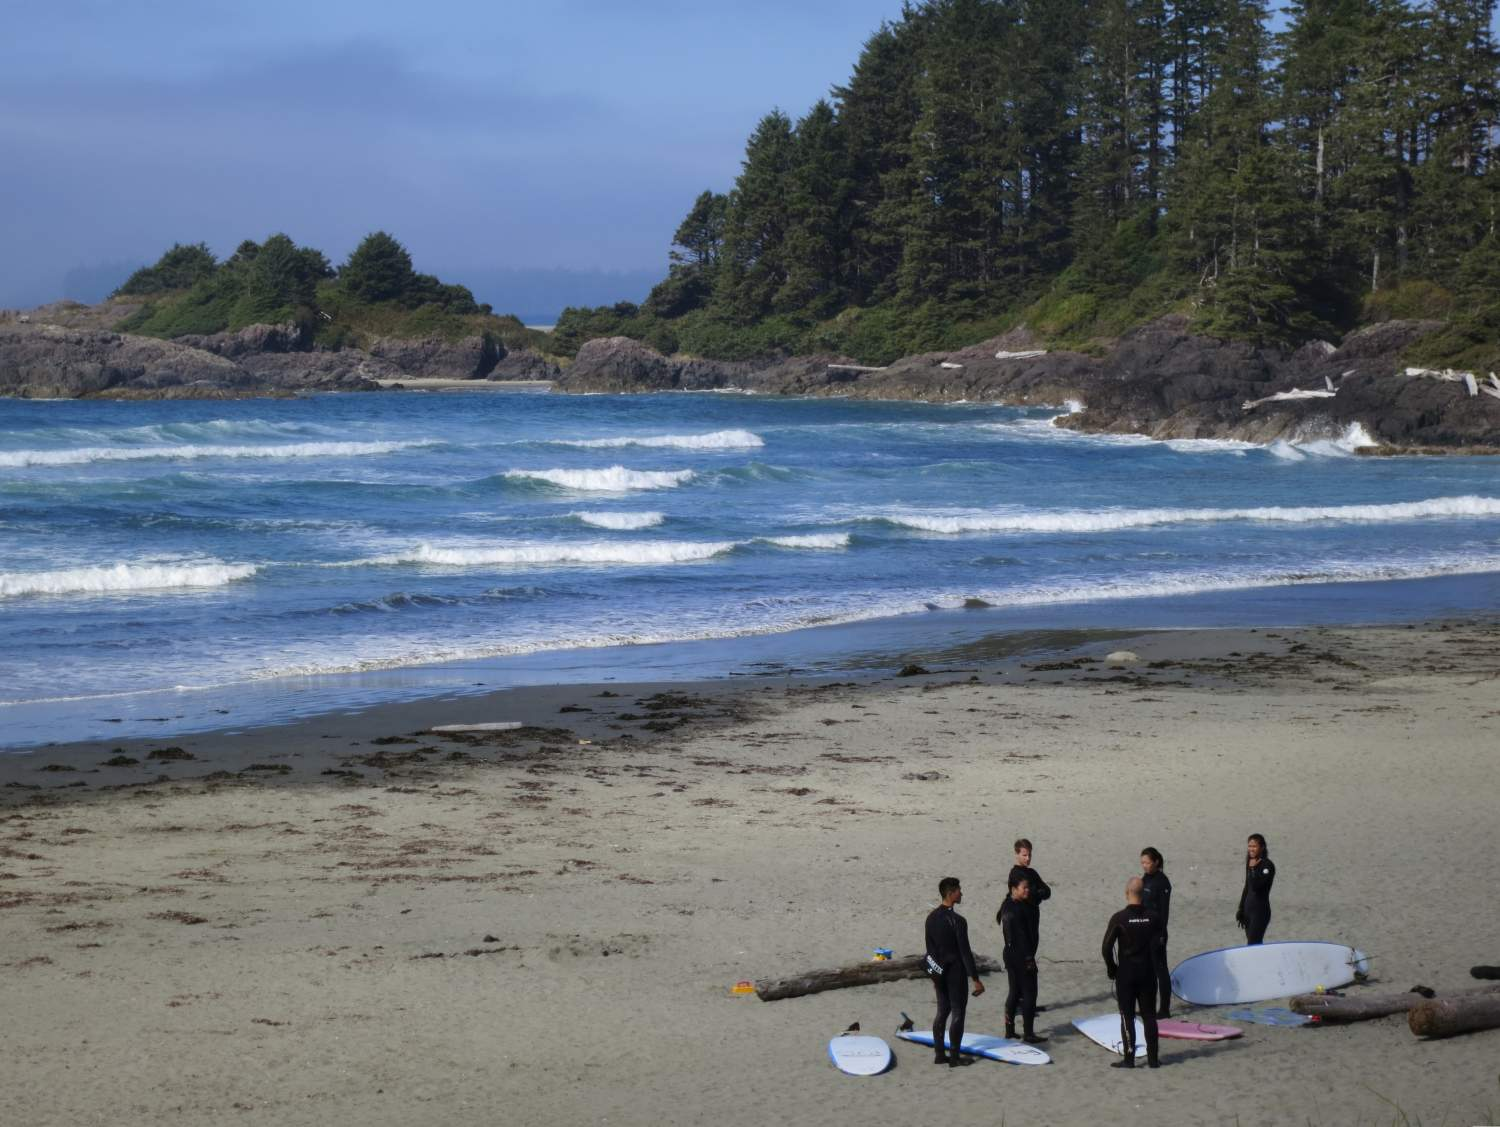 Surf lessons in Tofino